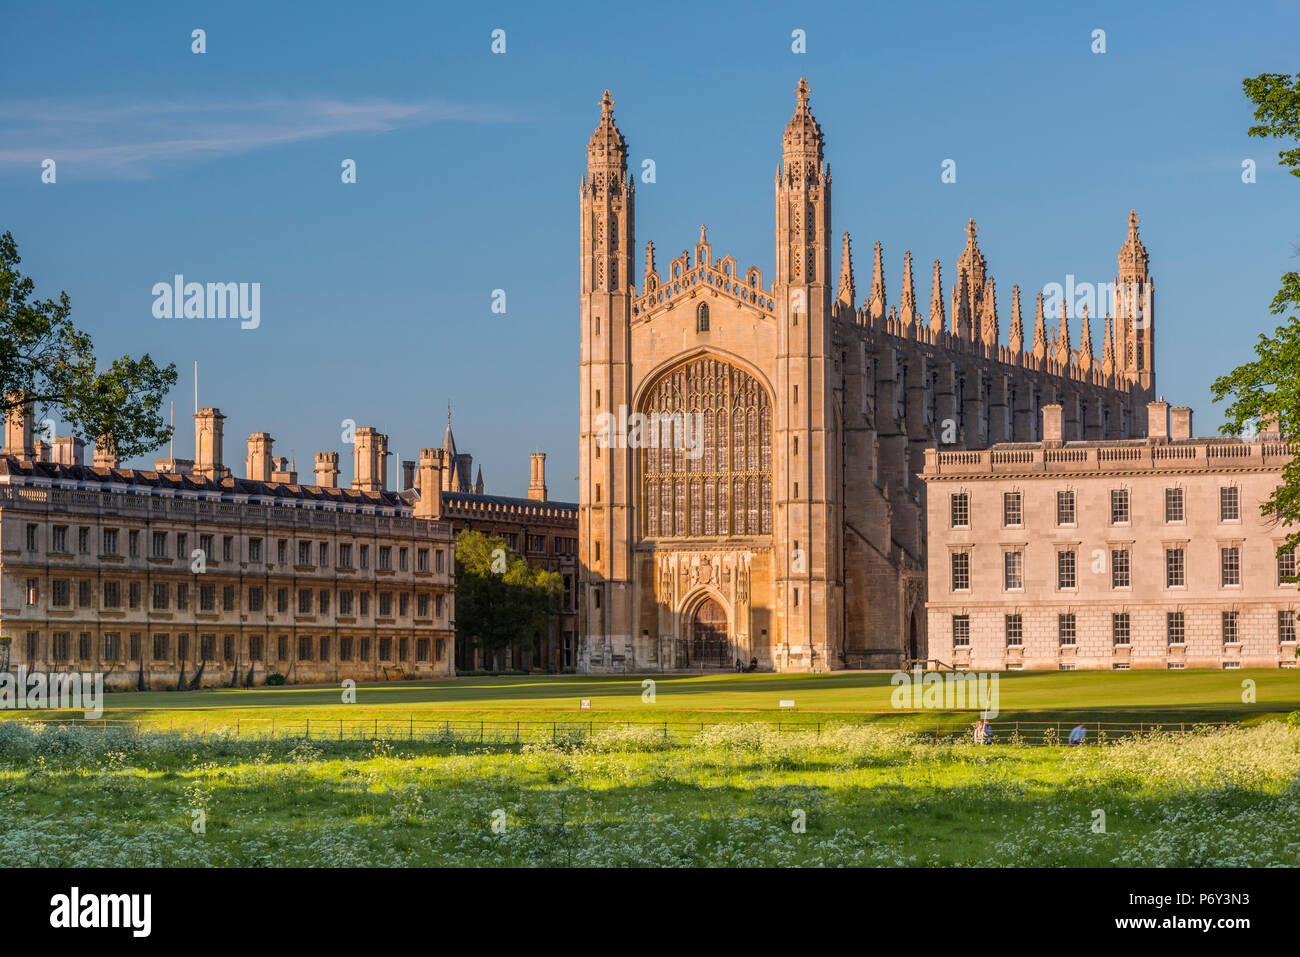 UK, England, Cambridgeshire, Cambridge, The Backs, King's College, King's College Chapel - Stock Image